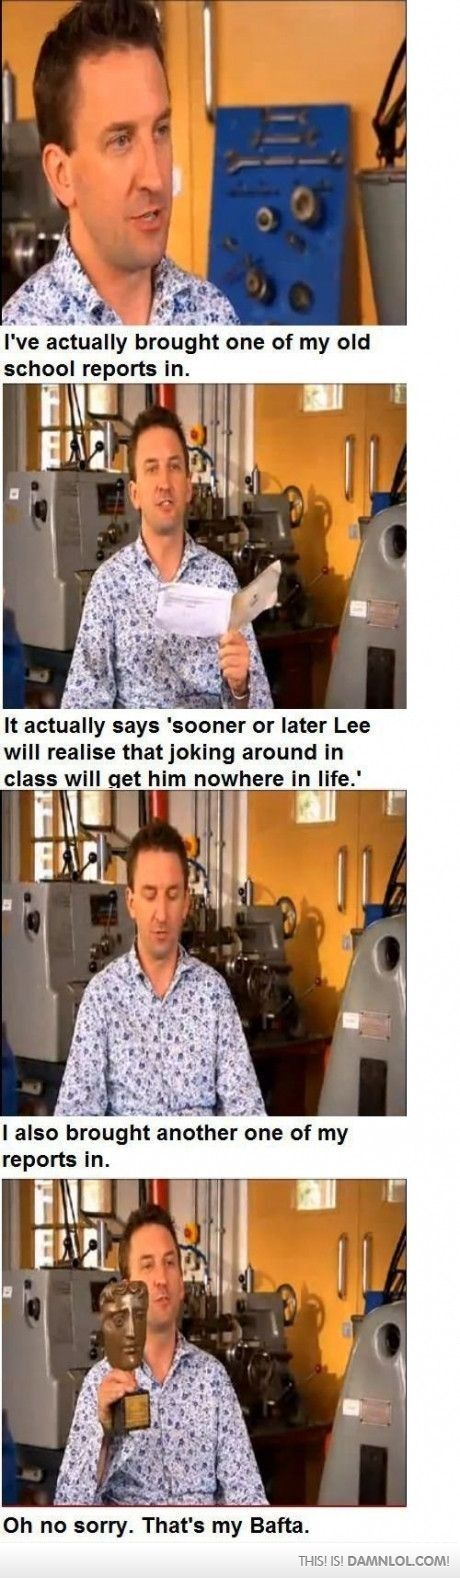 Lee Mack! Haha, one of my all time favourites. :)